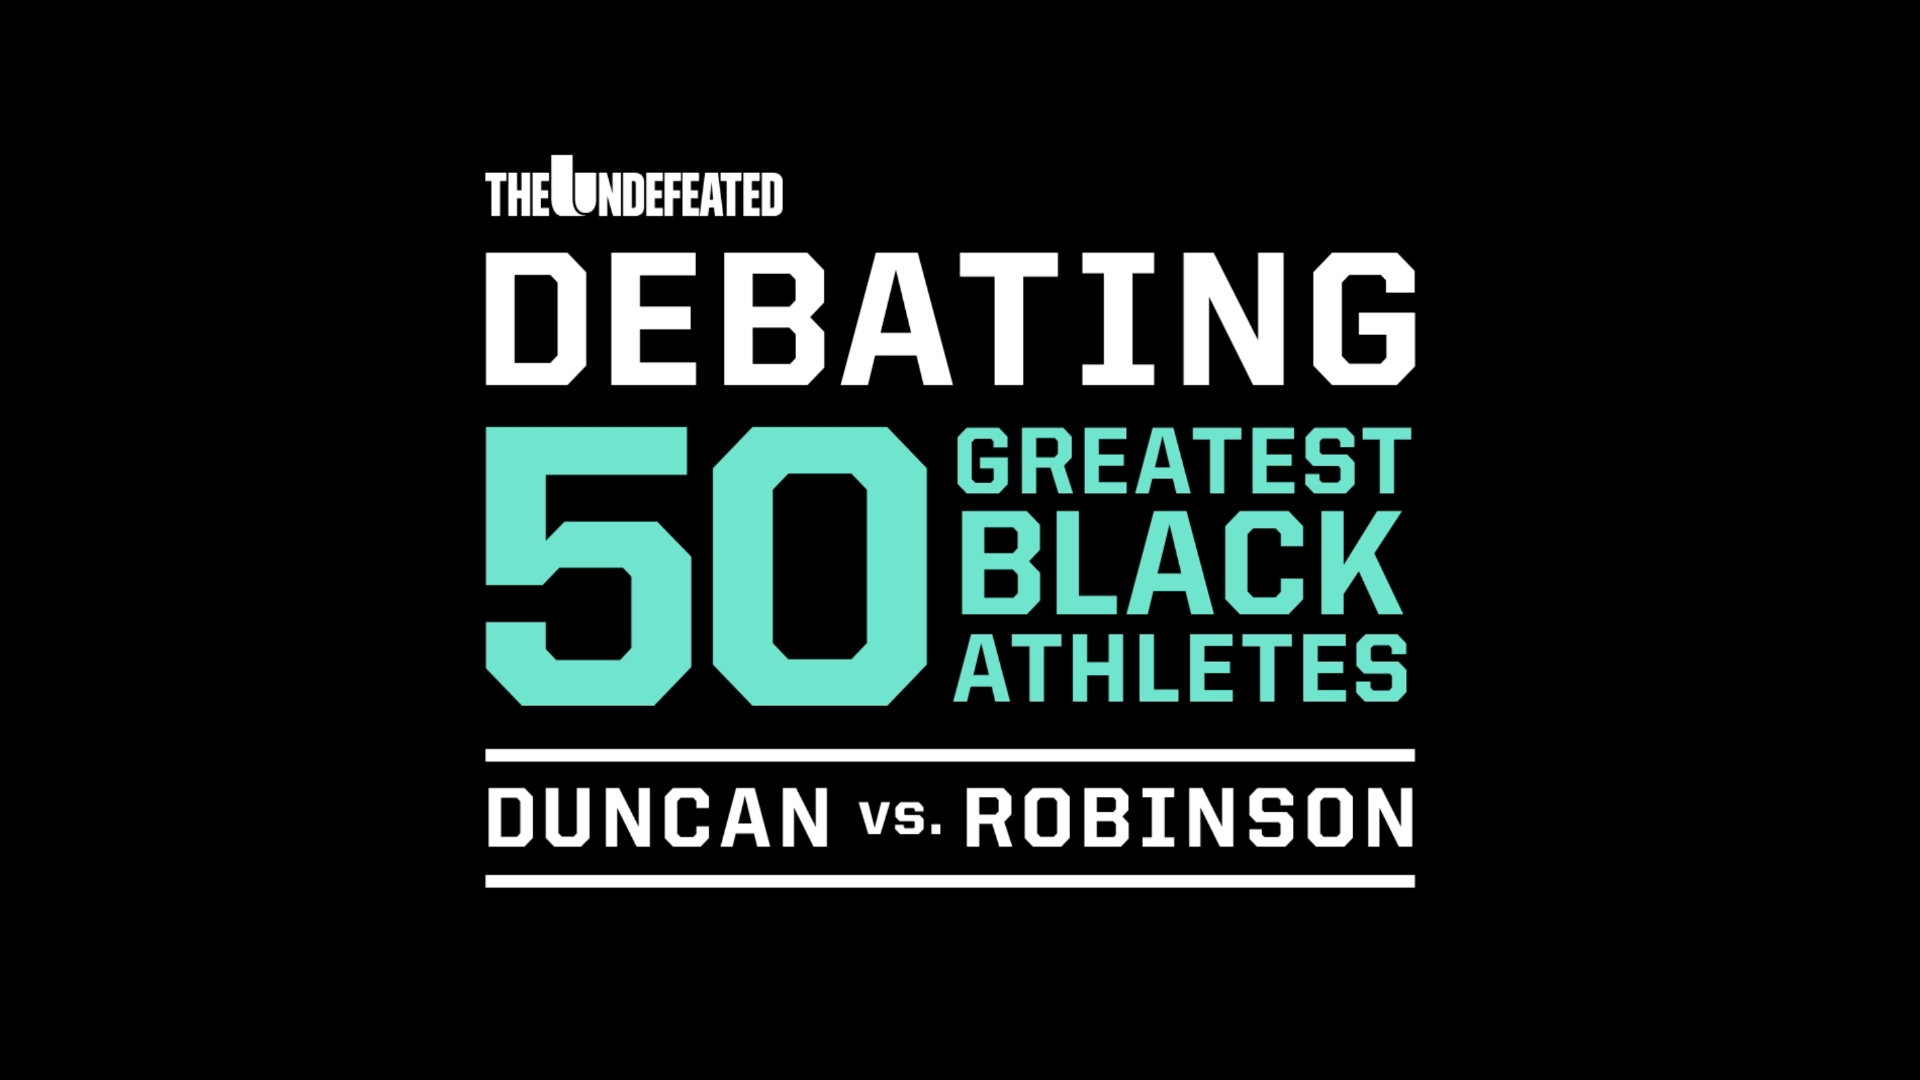 50 greatest black athletes — The Undefeated